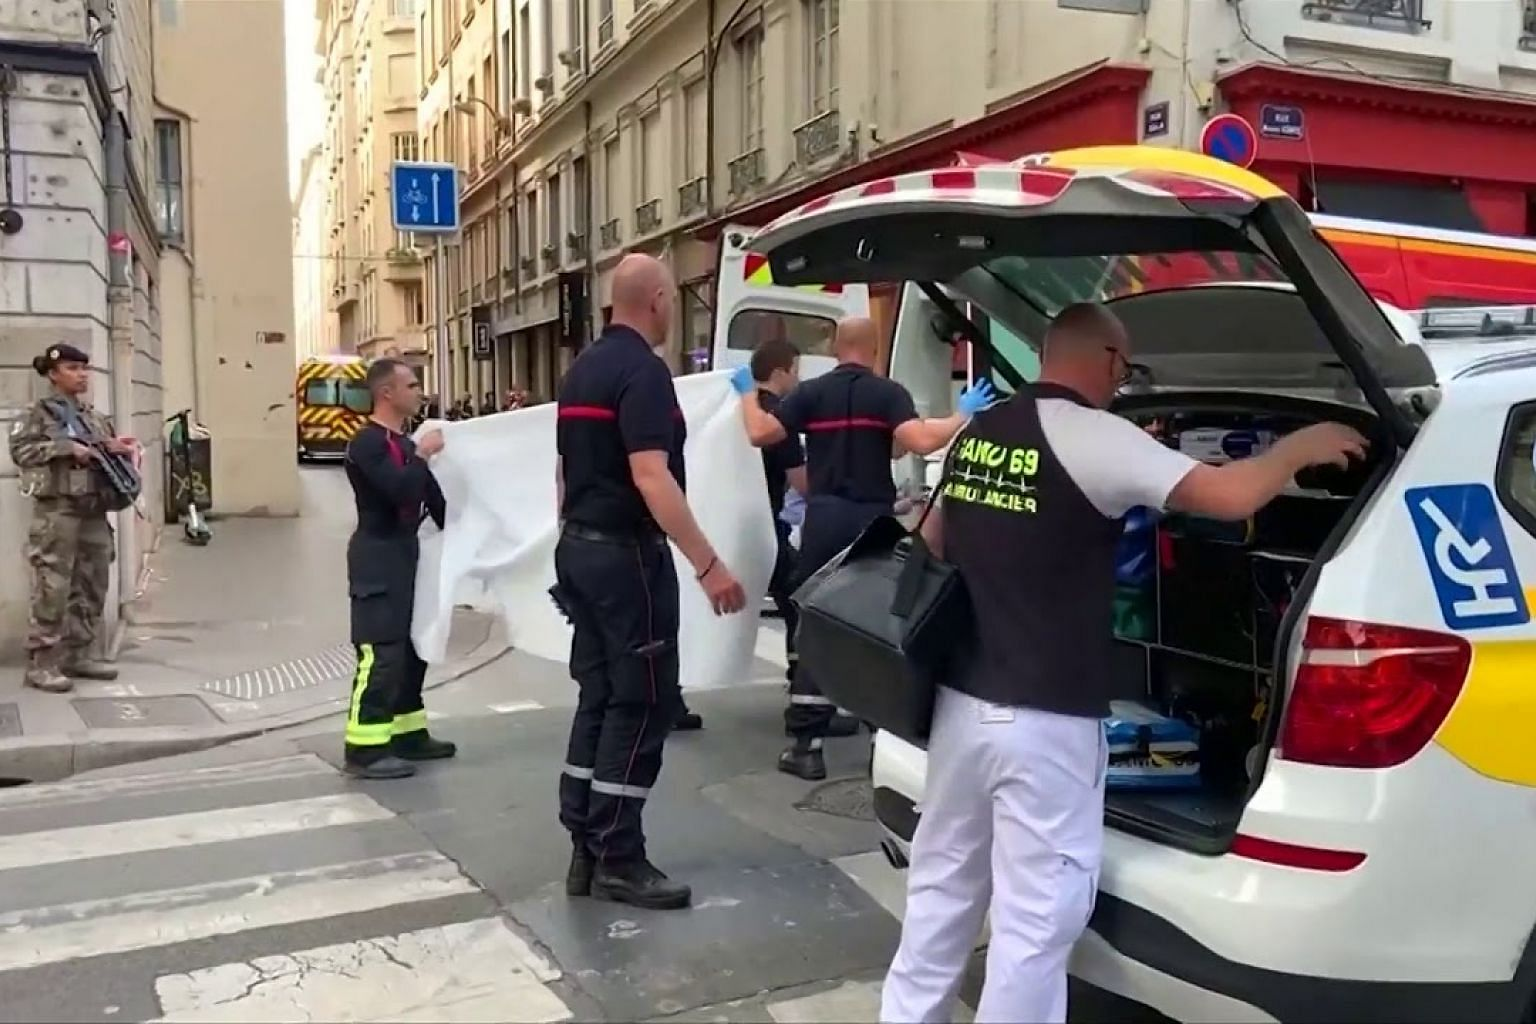 Police in France on manhunt for suitcase bomber